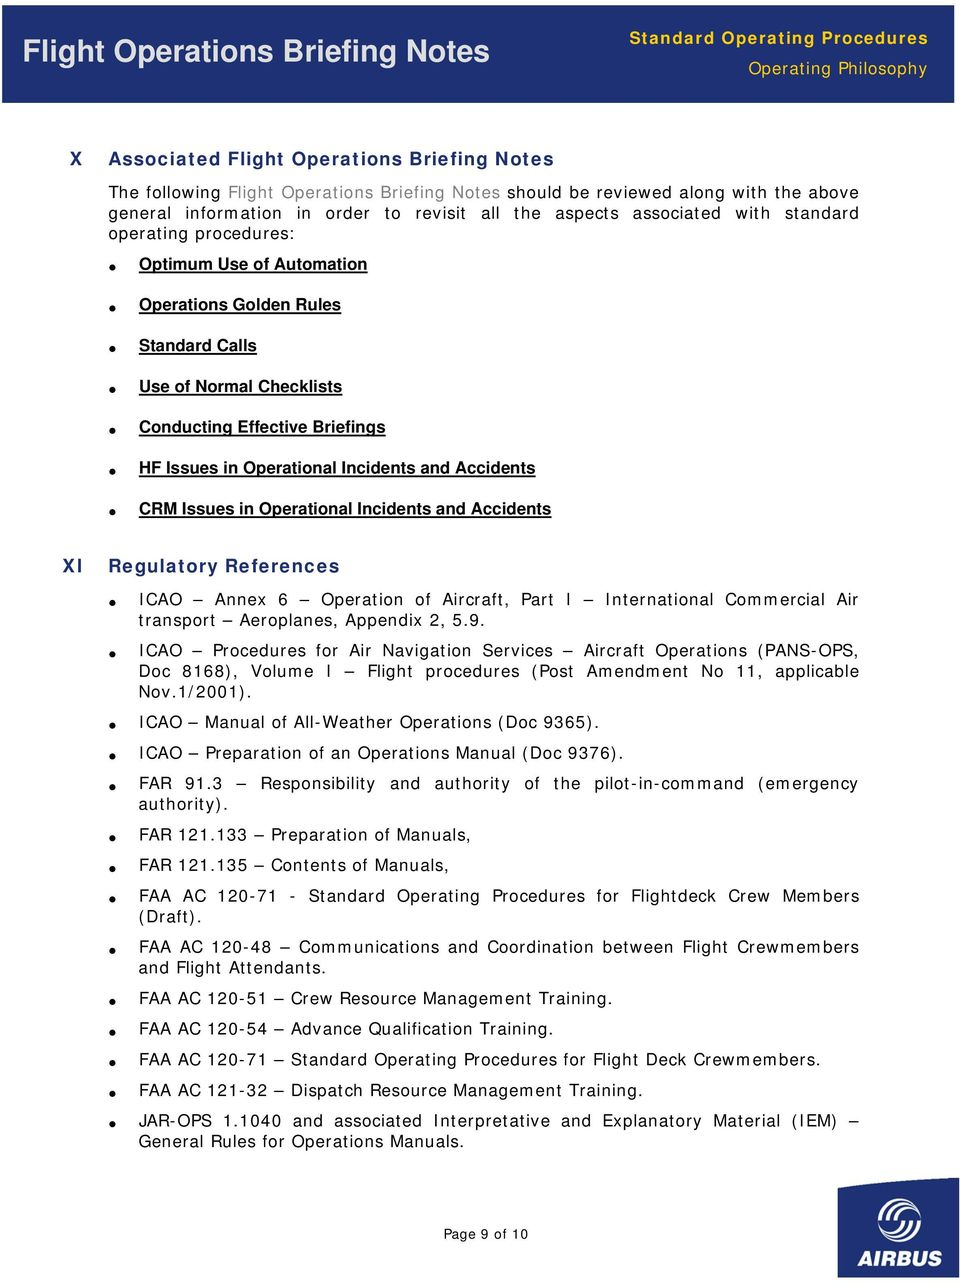 Accidents CRM Issues in Operational Incidents and Accidents XI Regulatory References ICAO Annex 6 Operation of Aircraft, Part I International Commercial Air transport Aeroplanes, Appendix 2, 5.9.